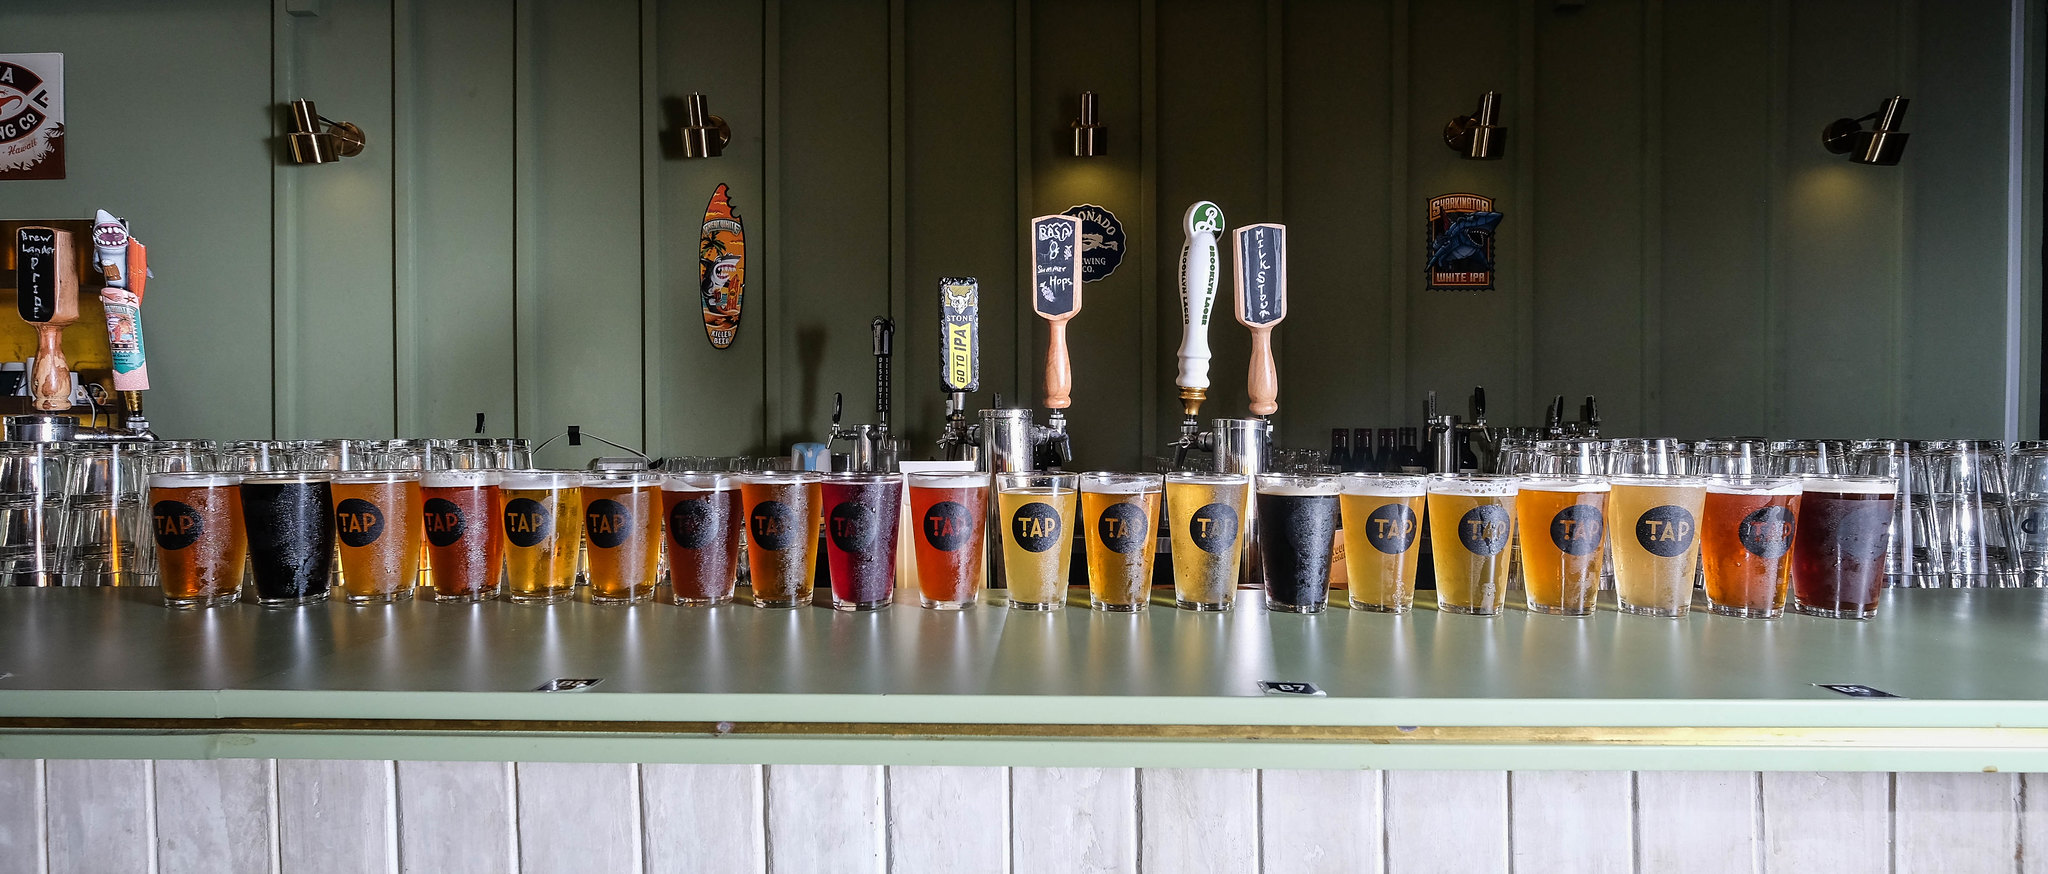 TAP - 20 Different Craft Beers at just $10 a Pint! - Miss